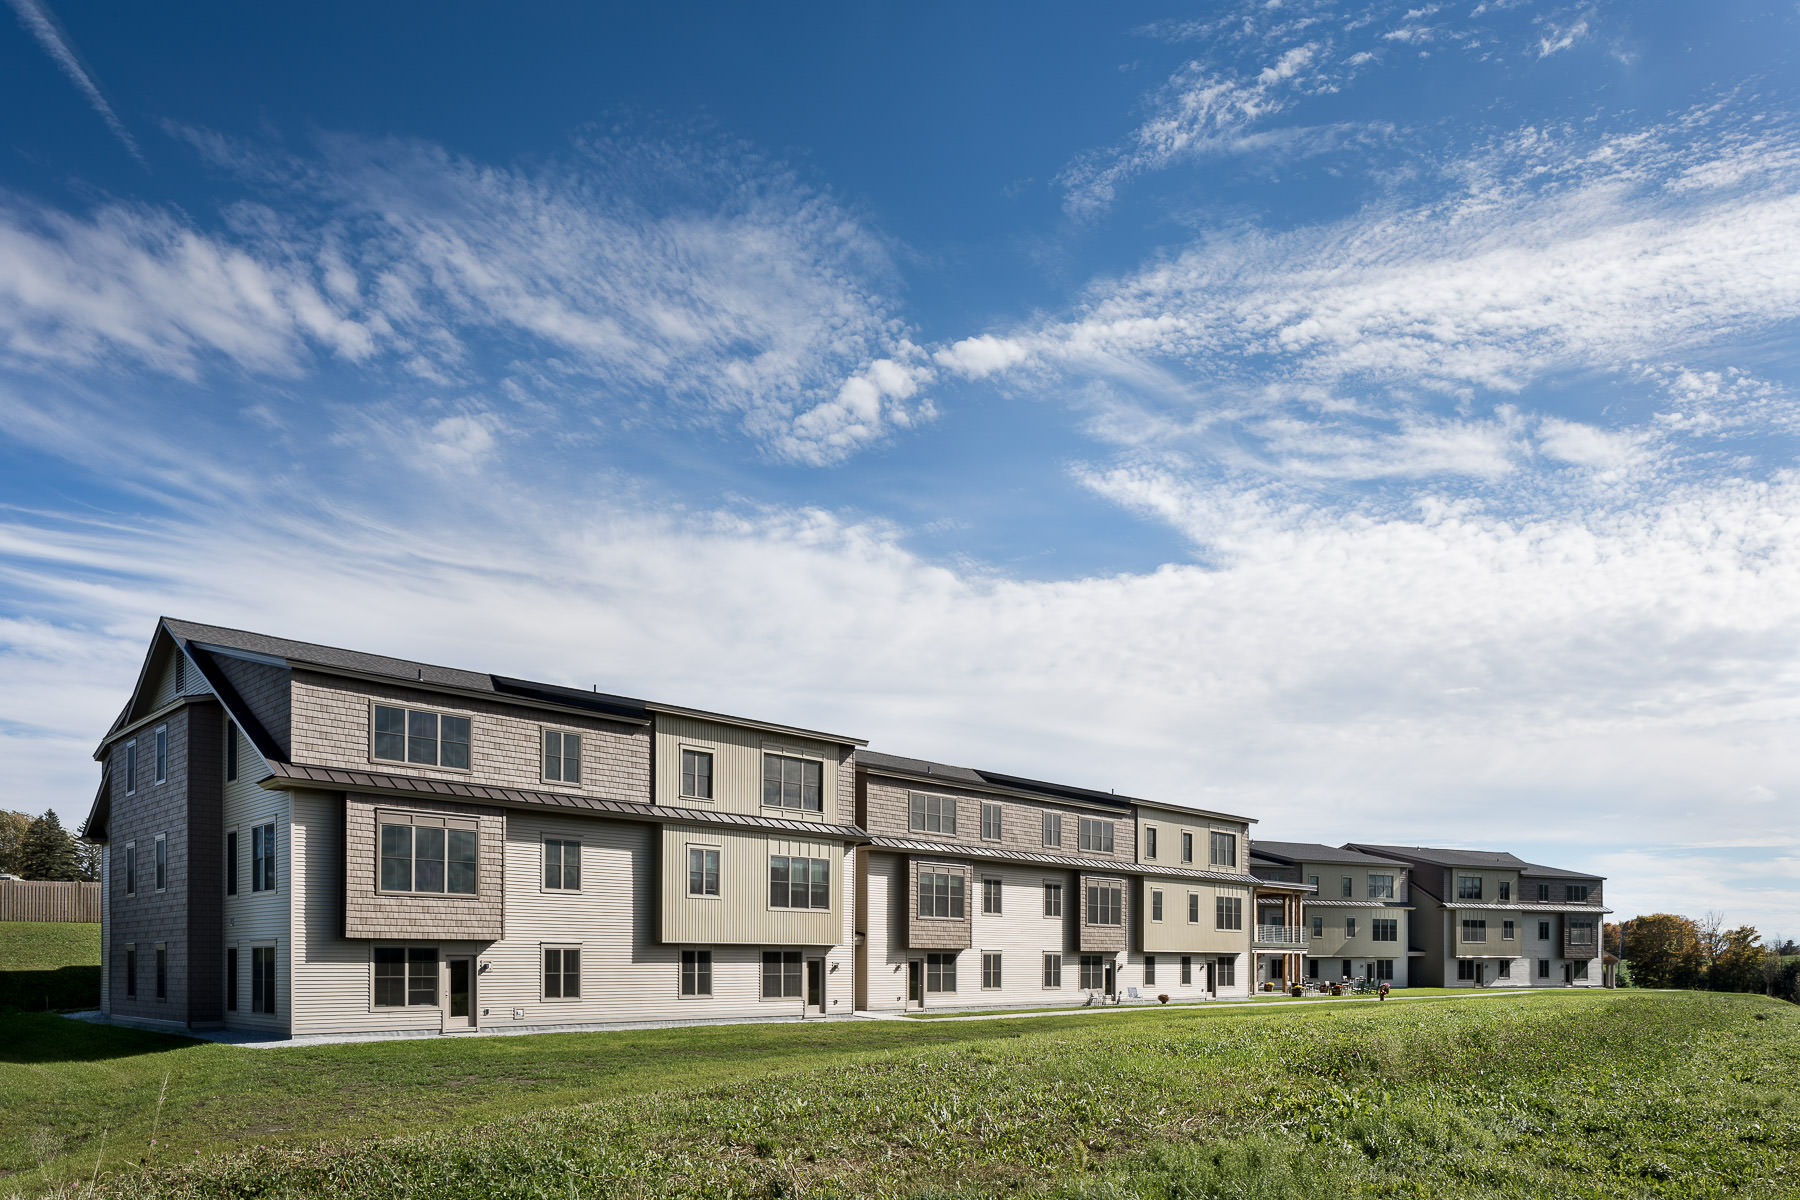 An overall view of the Strode Independent Living Facility in Randolph by Vermont commercial photographer Stina Booth